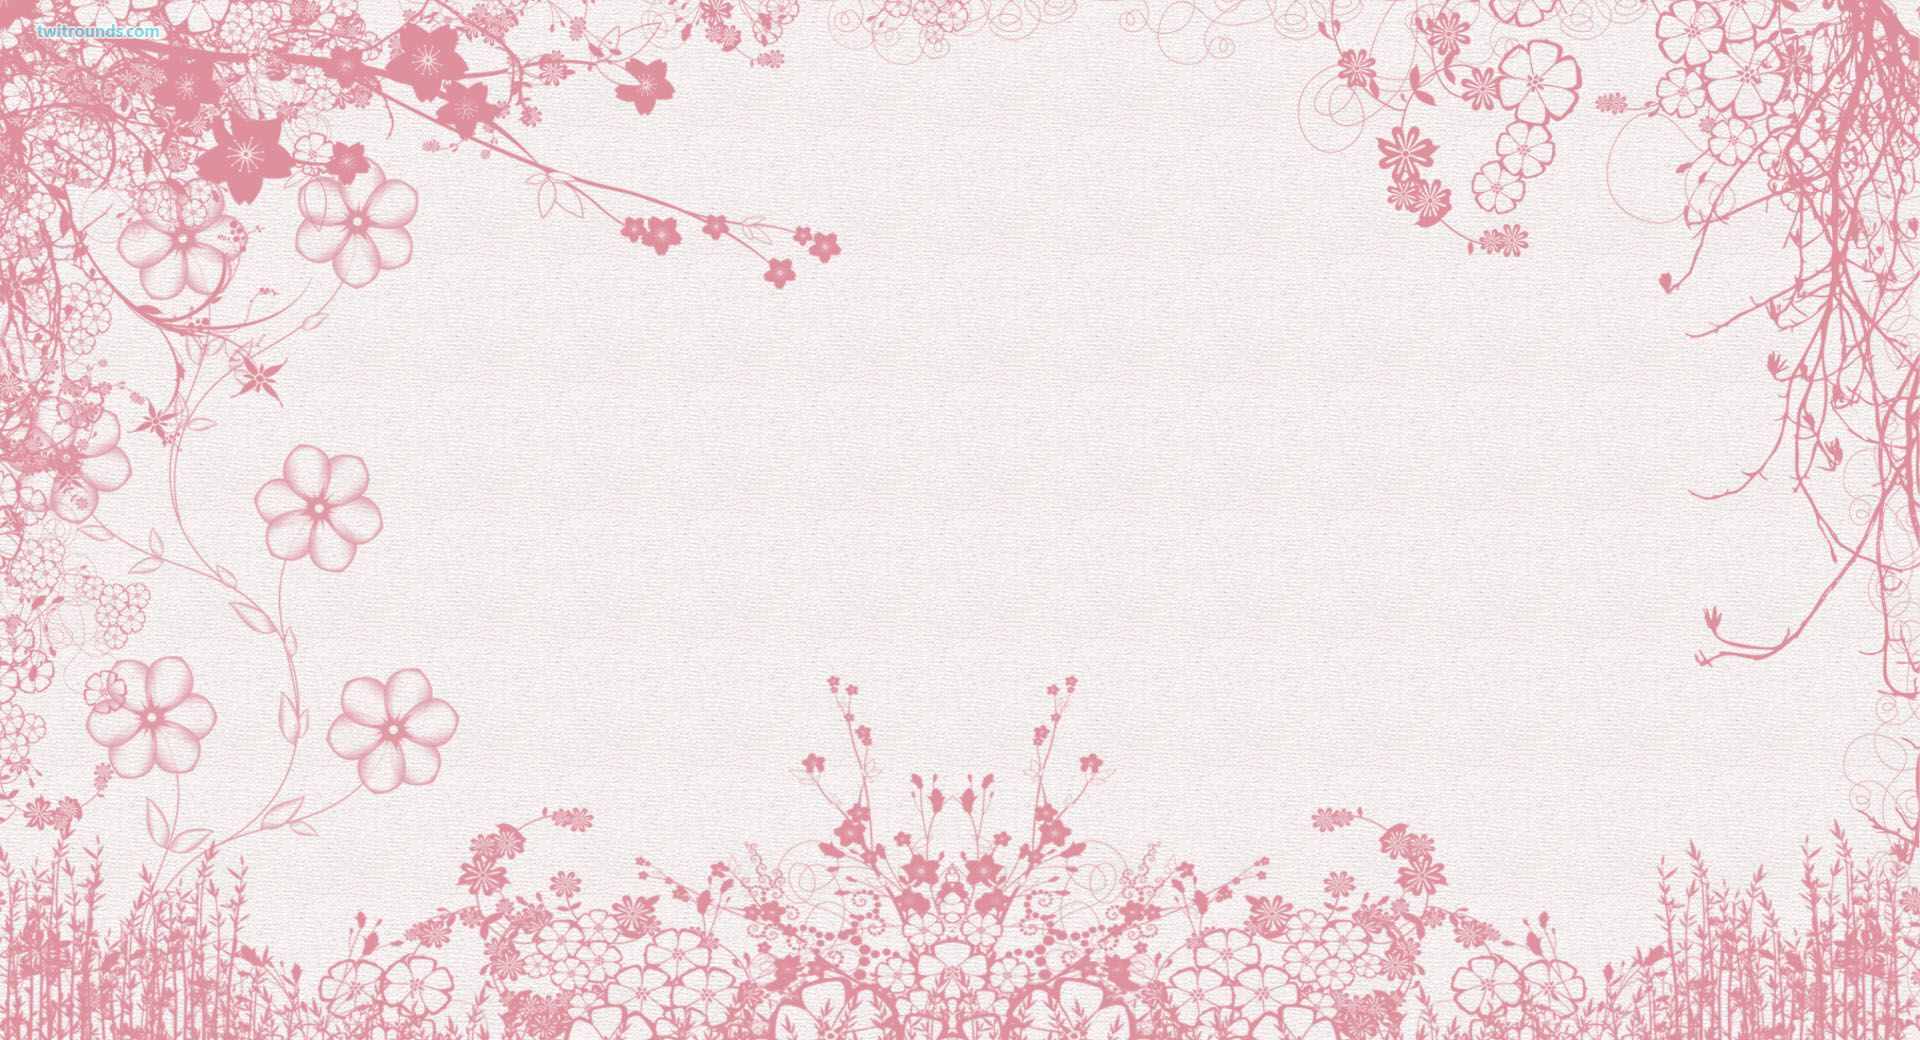 Flowerbackground pink flowers twitter background twitter flowerbackground pink flowers twitter background twitter backgrounds wallpaper mightylinksfo